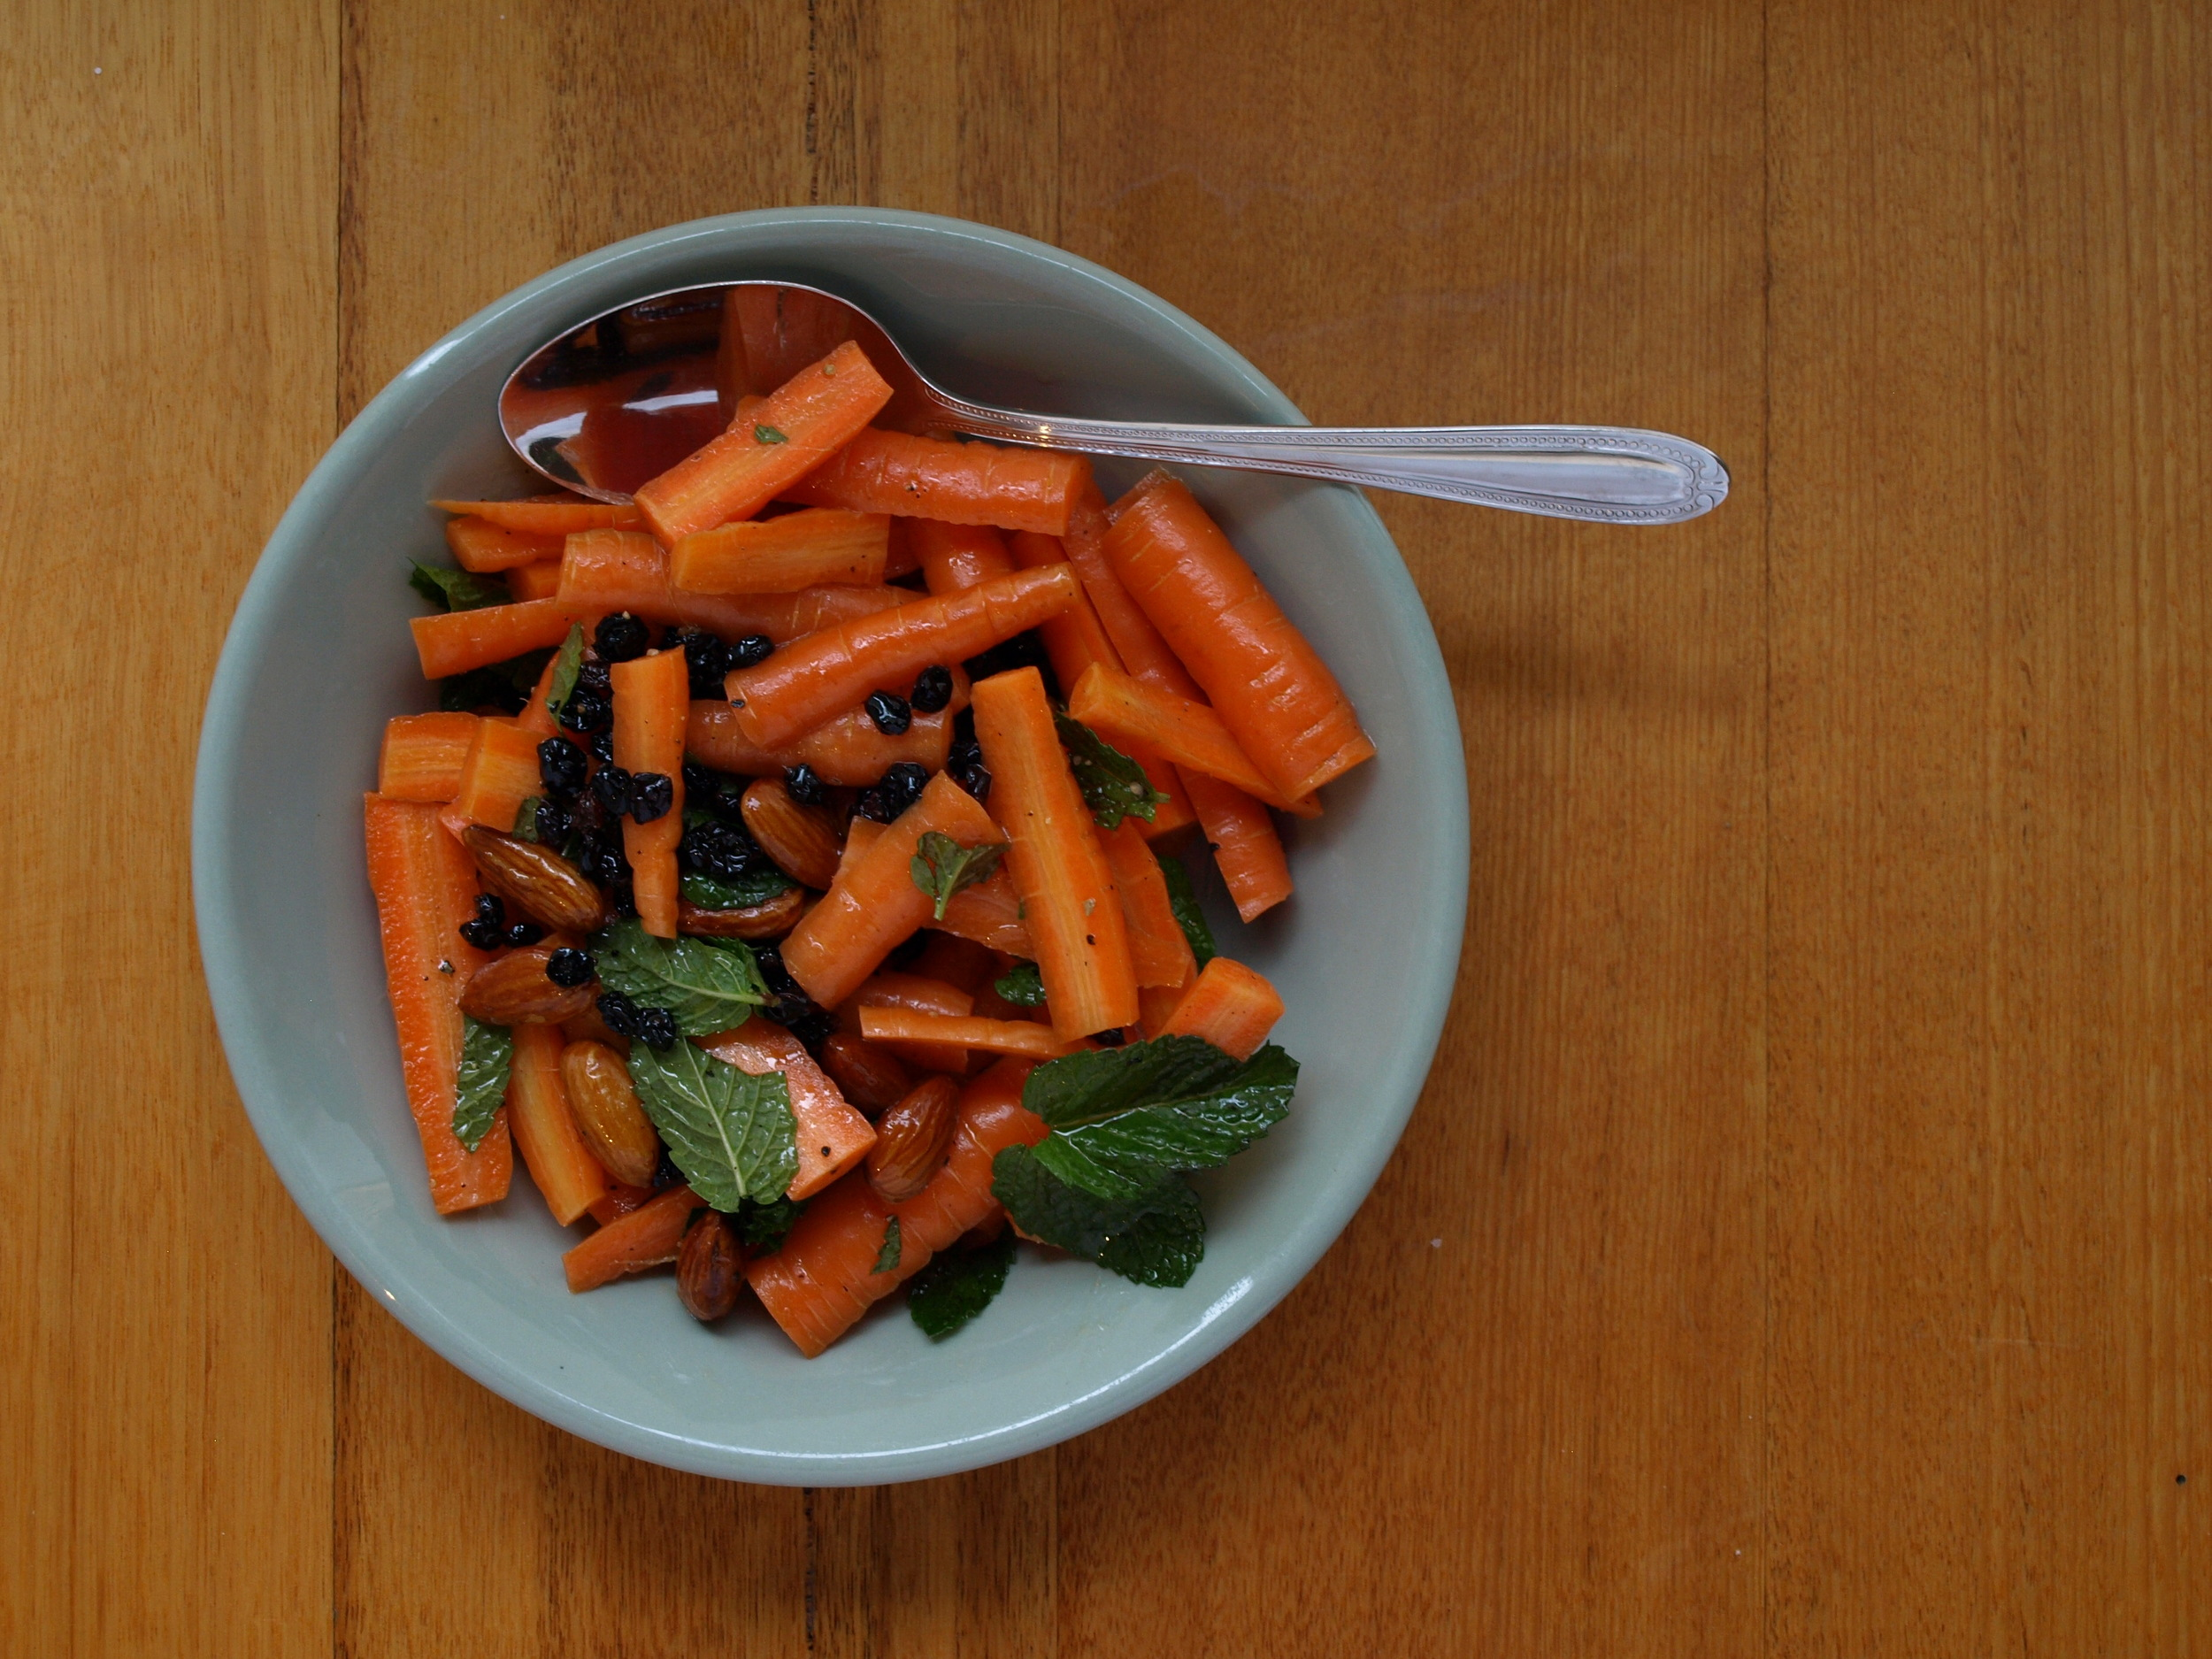 Carrot Salad with Currants, Mint and Almonds